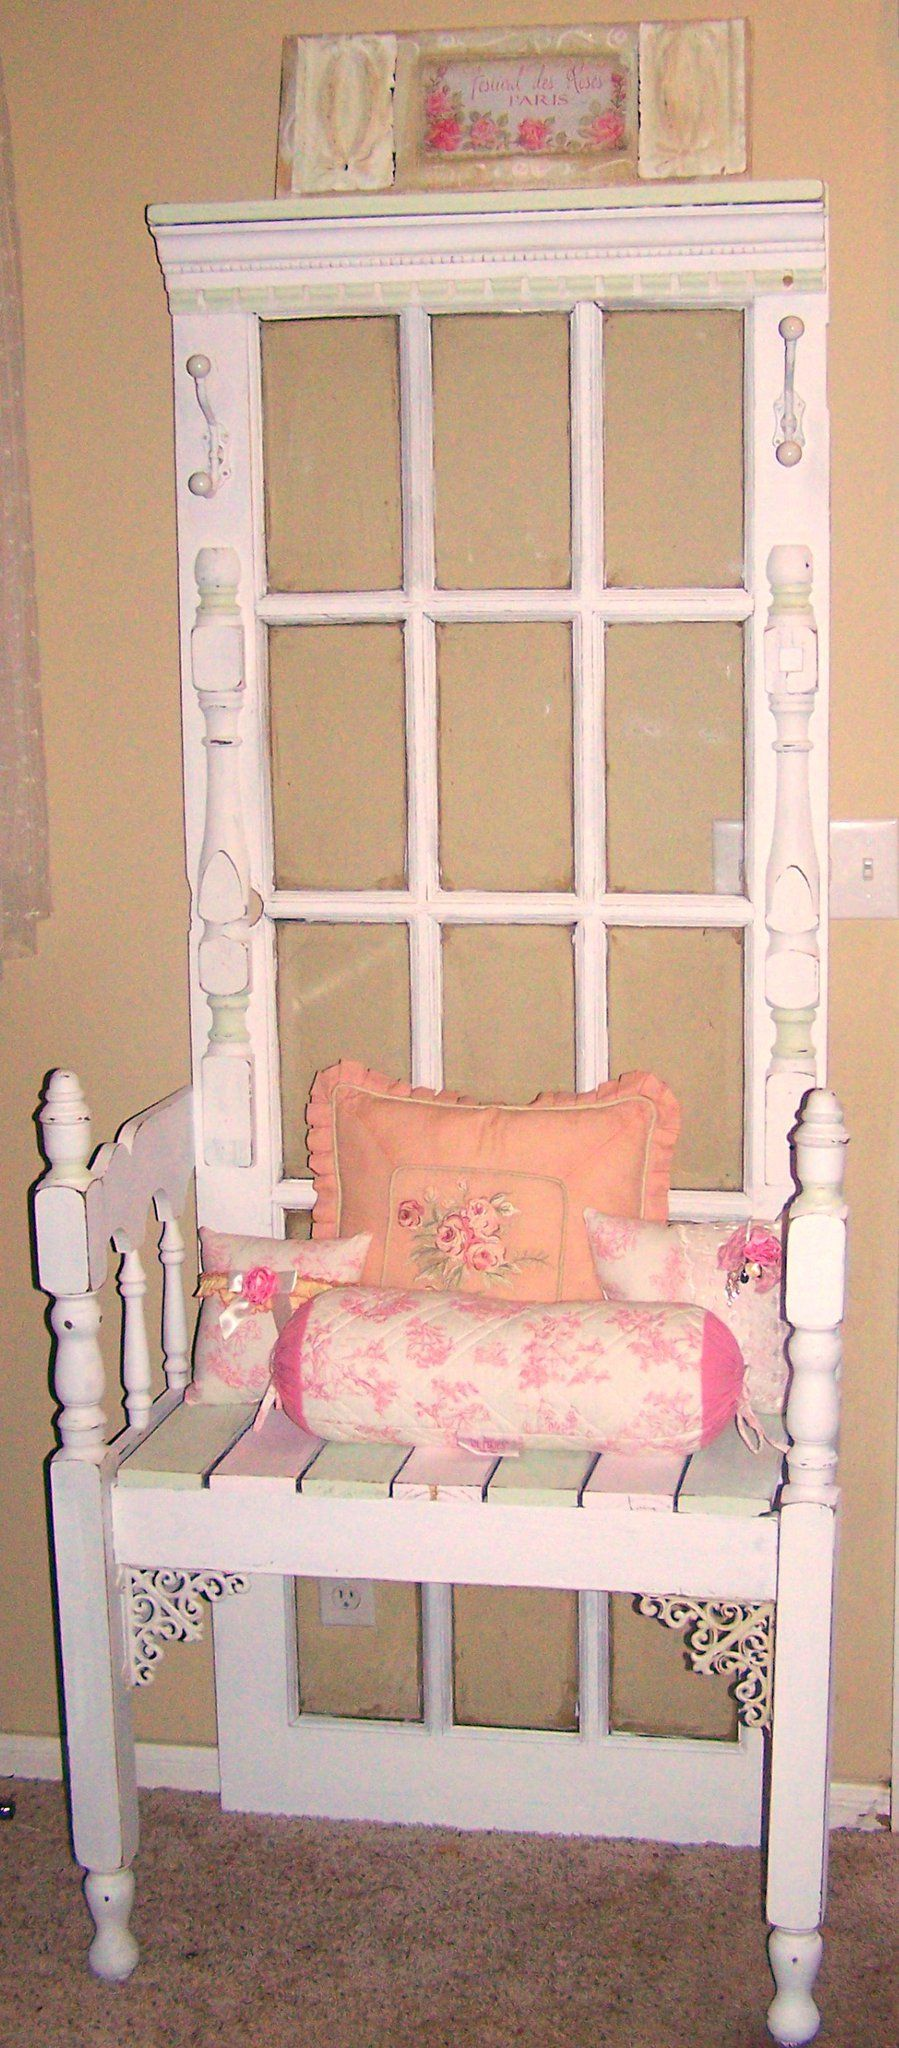 Wooden french door a small cheap wooden headboard sawed in half hall tree made from old french door sides from bed love the added trim what i especially like is that this one uses a french door for the back instead of rubansaba